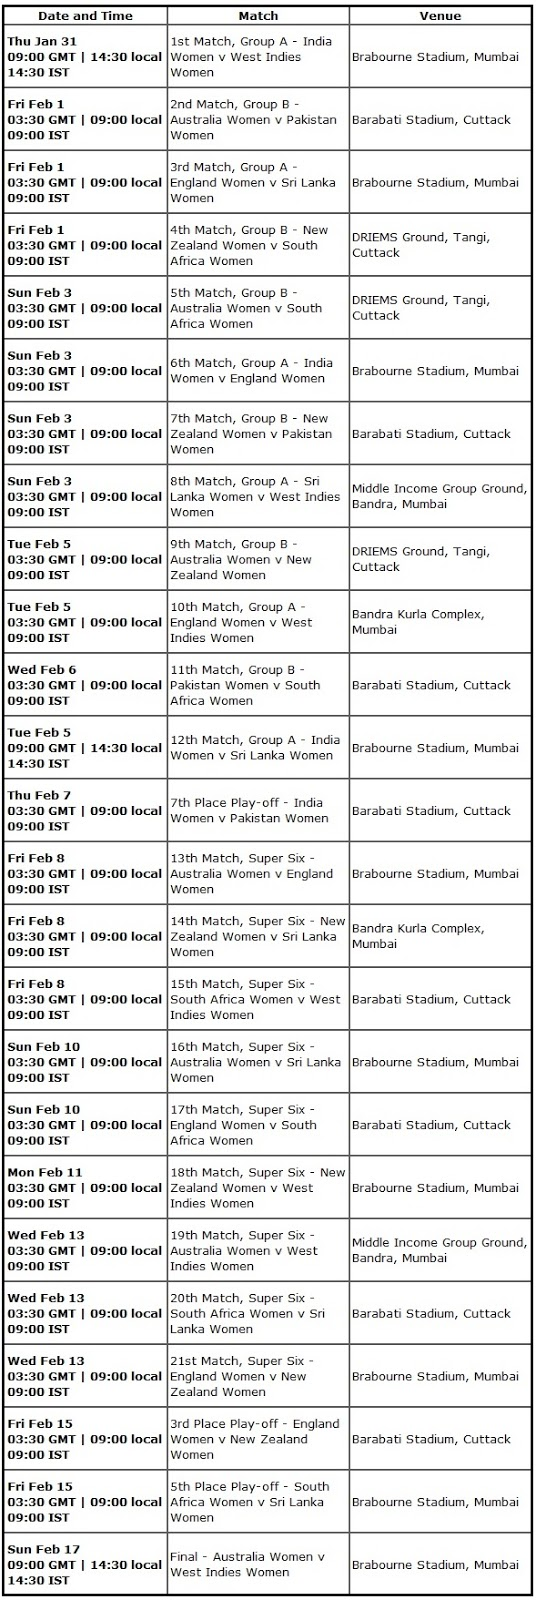 Women's Cricket World Cup India 2013 Schedule